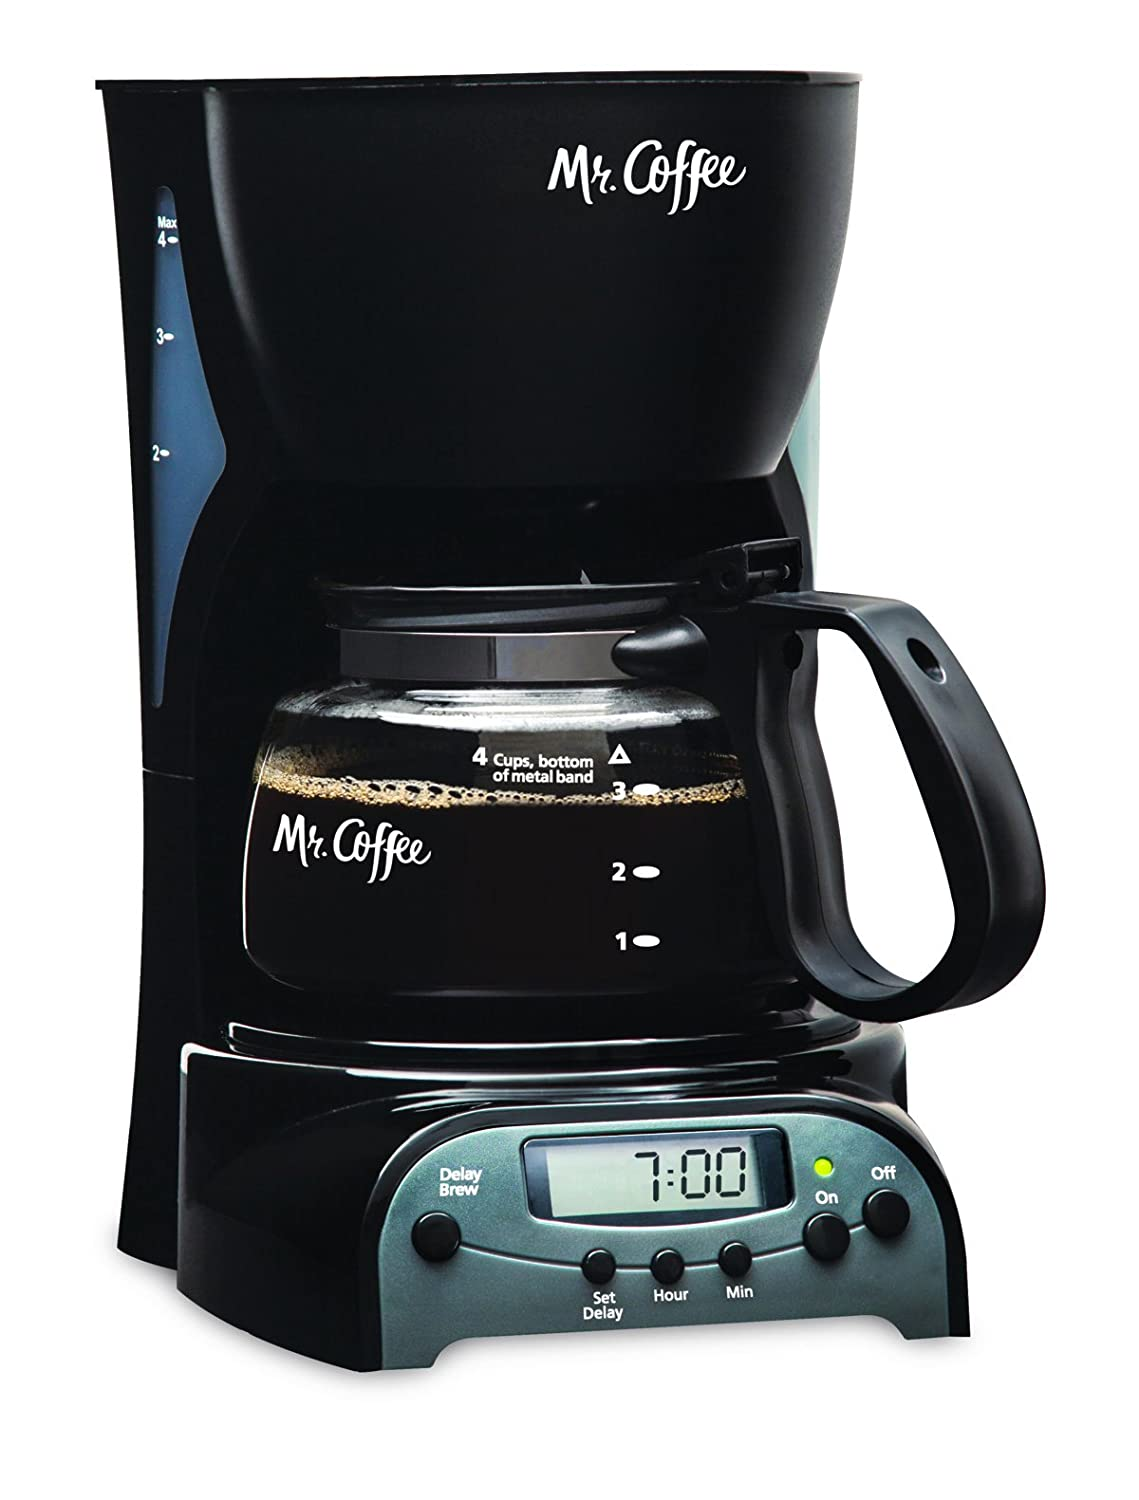 Mr. Coffee 4 Cup Programmable Automatic Drip Coffee Pot Maker Brewer 72179228134 eBay